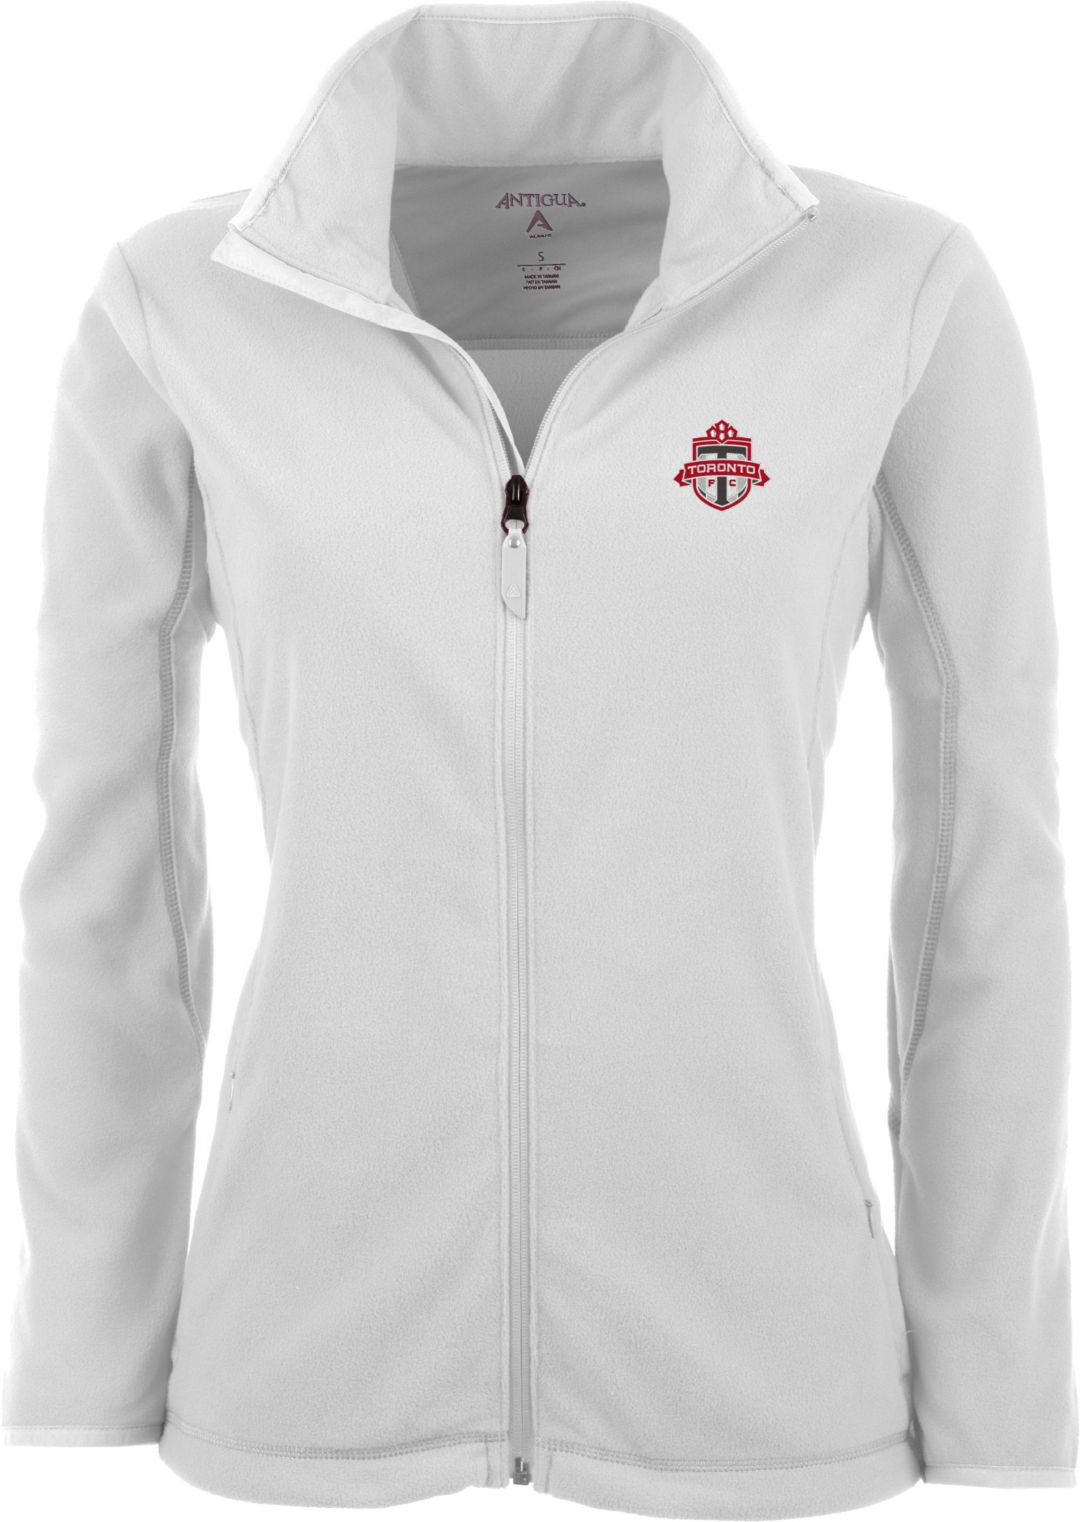 huge discount 3f0b9 28641 Antigua Women's Toronto FC White Ice Full-Zip Fleece Jacket